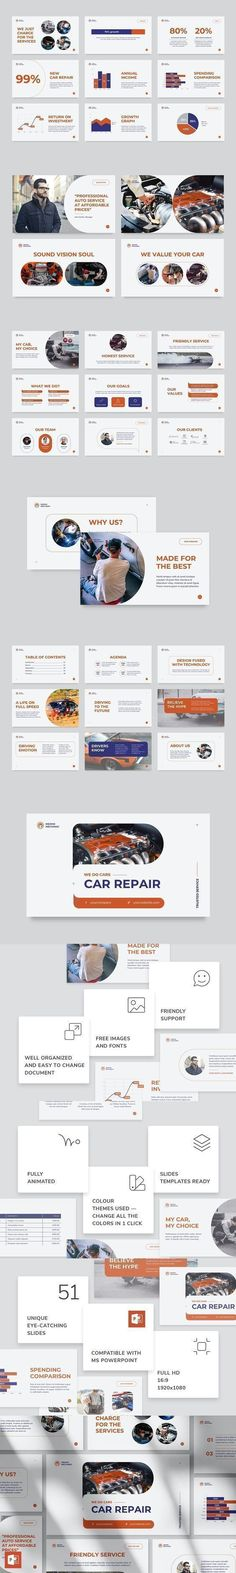 Car Repair PowerPoint Presentation